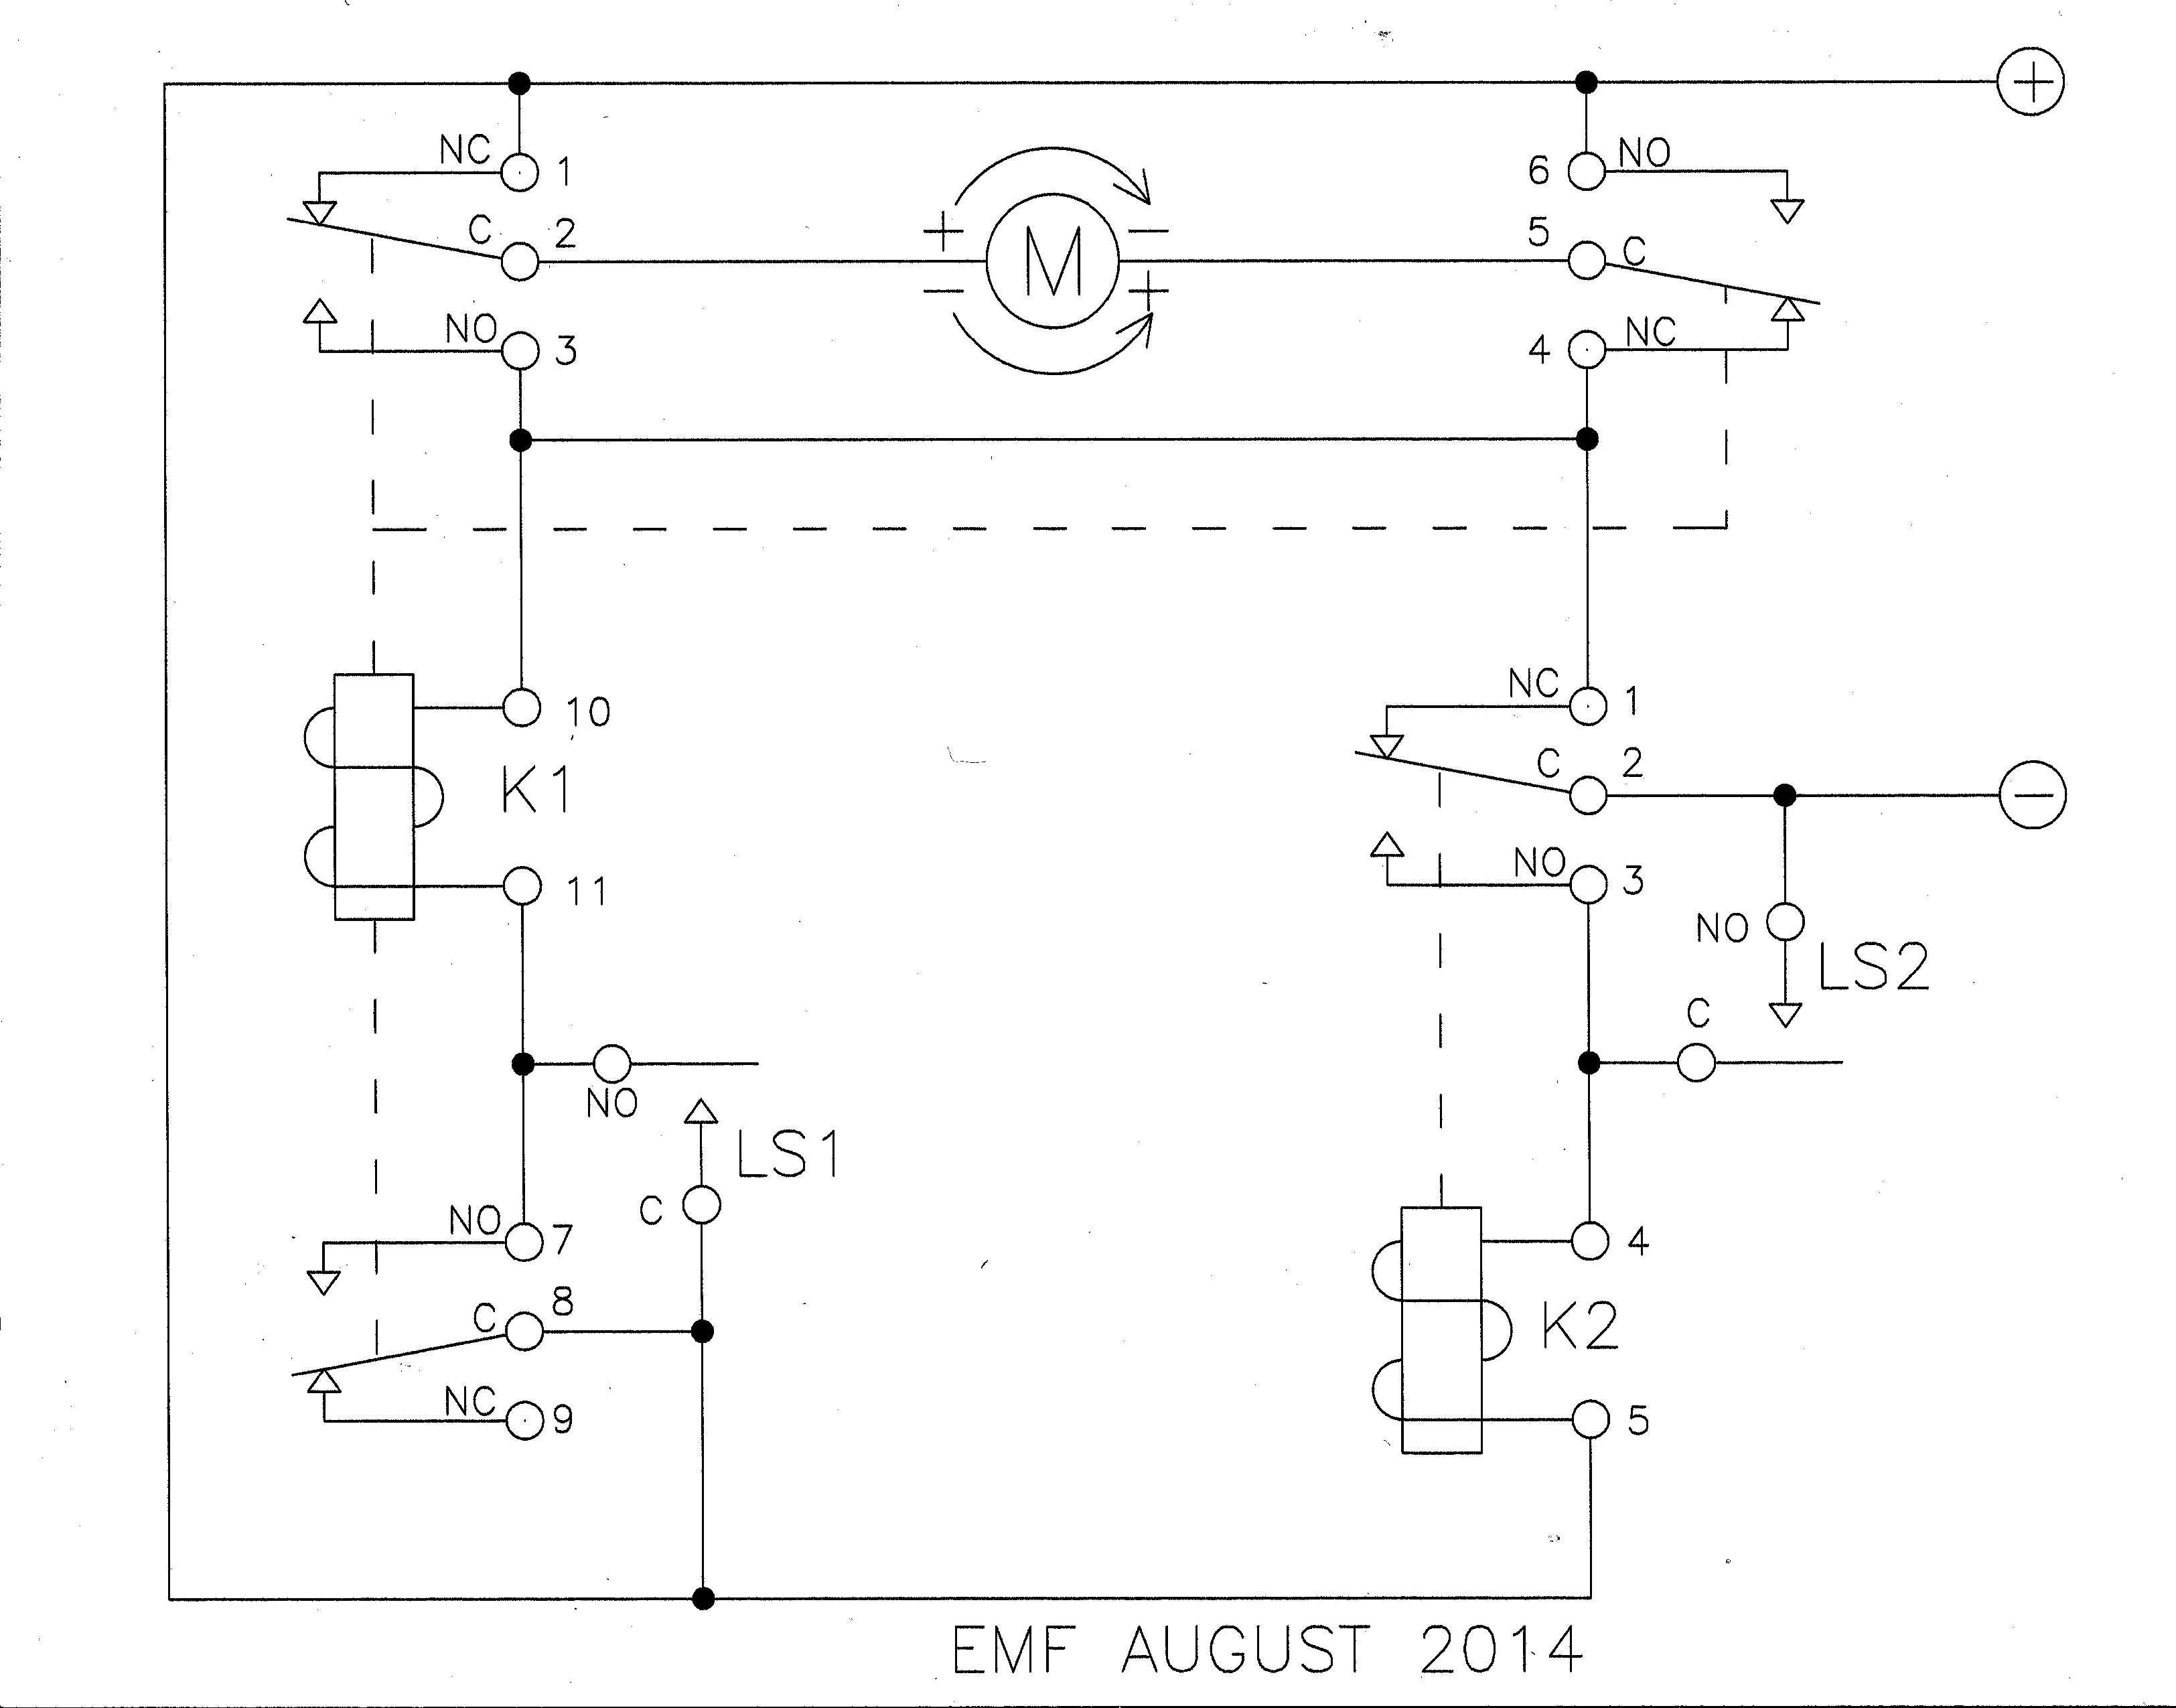 Relay - Limit Switches To Control Motor Direction - Electrical - 12 Volt Relay Wiring Diagram